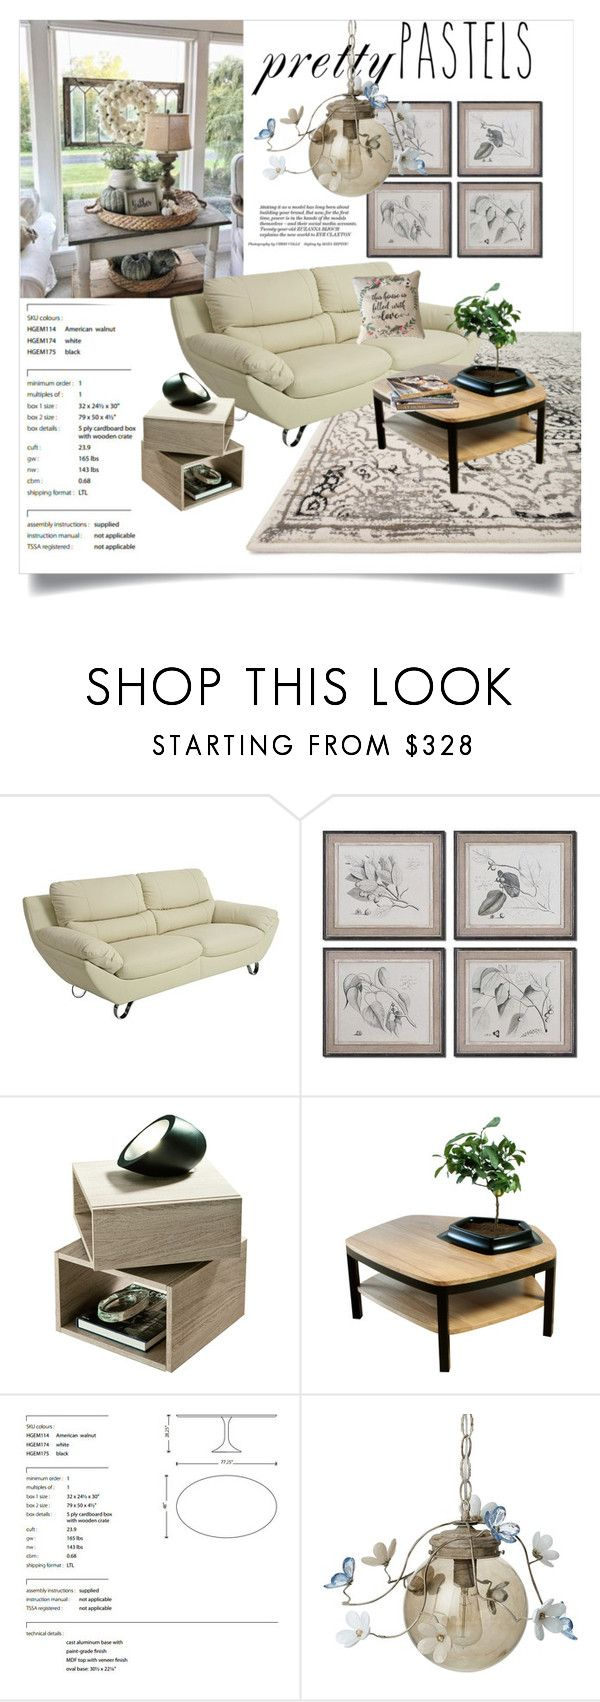 """""""Petty Pastel Decor"""" by clotheshawg ❤ liked on Polyvore featuring interior, interiors, interior design, home, home decor, interior decorating, Loloi Rugs, Pastel, Pacini & Cappellini and Nuevo"""